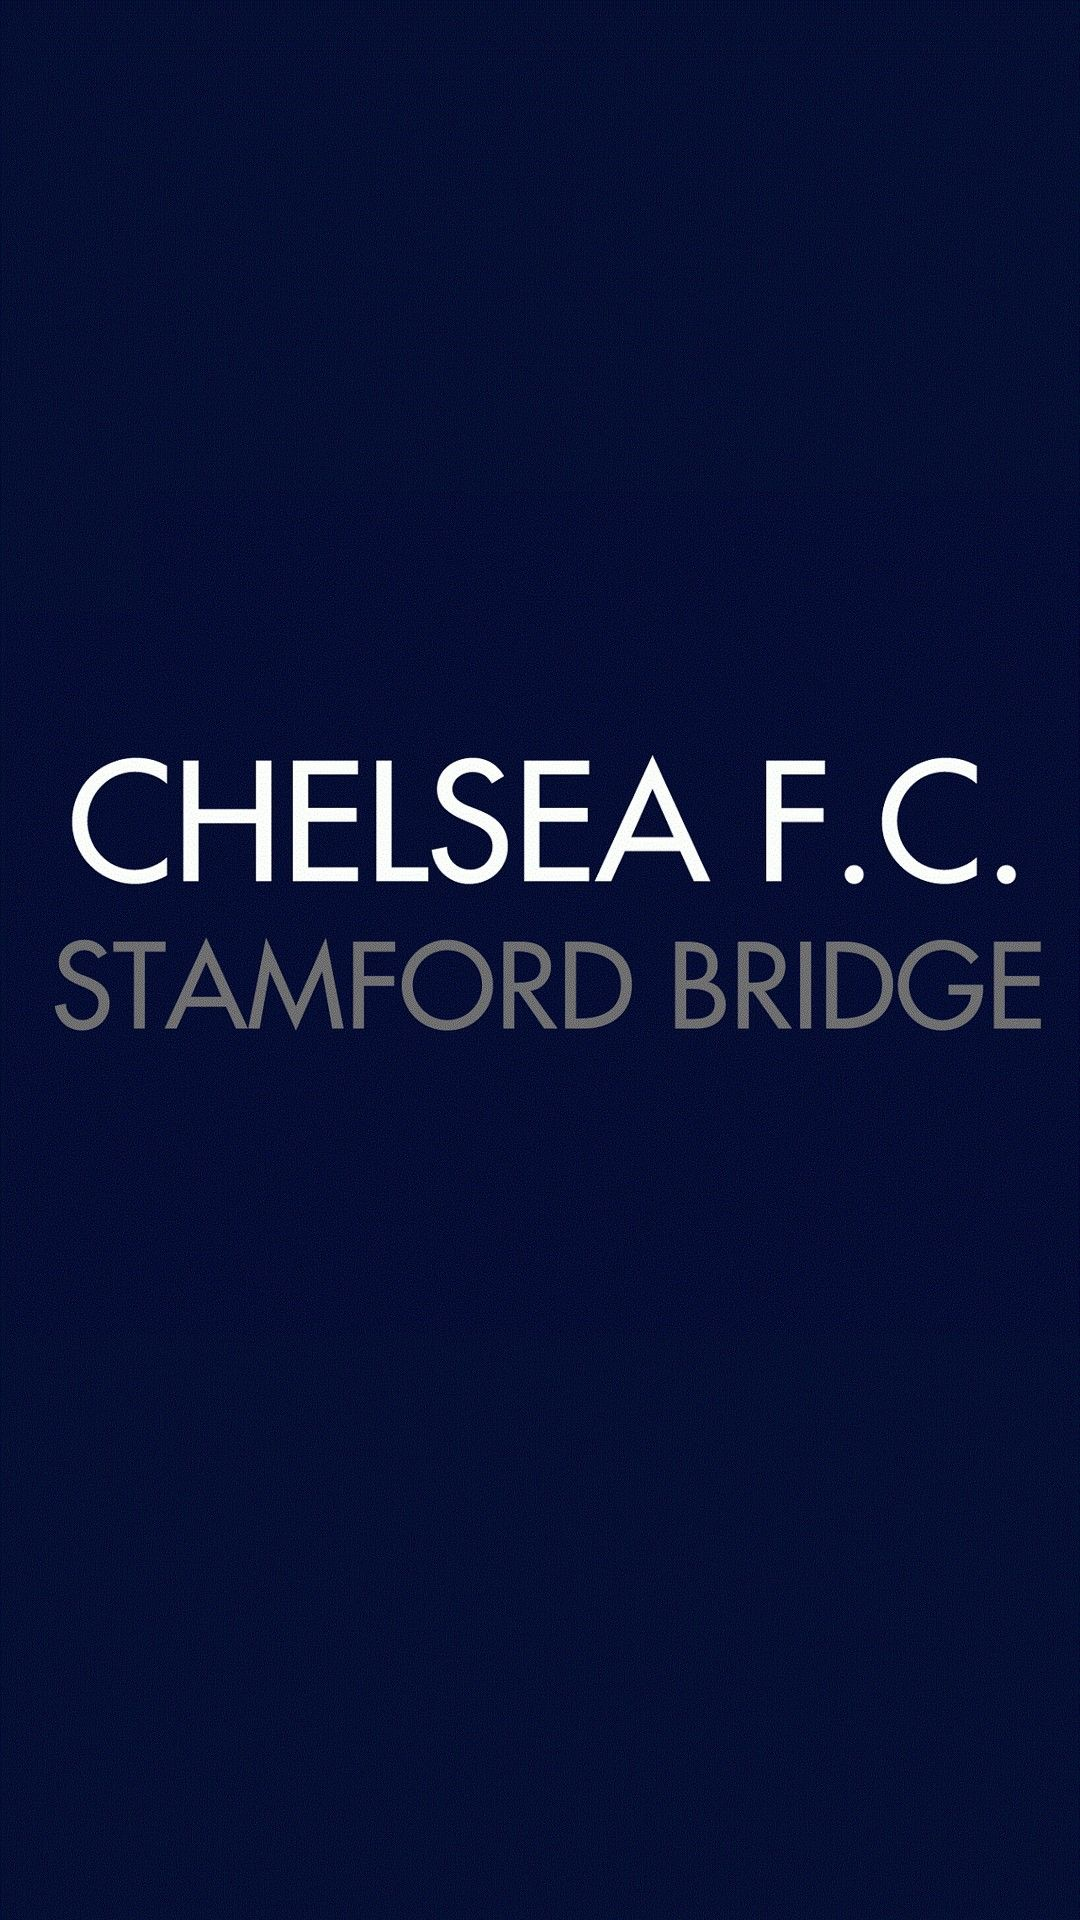 Pin on Chelsea fc